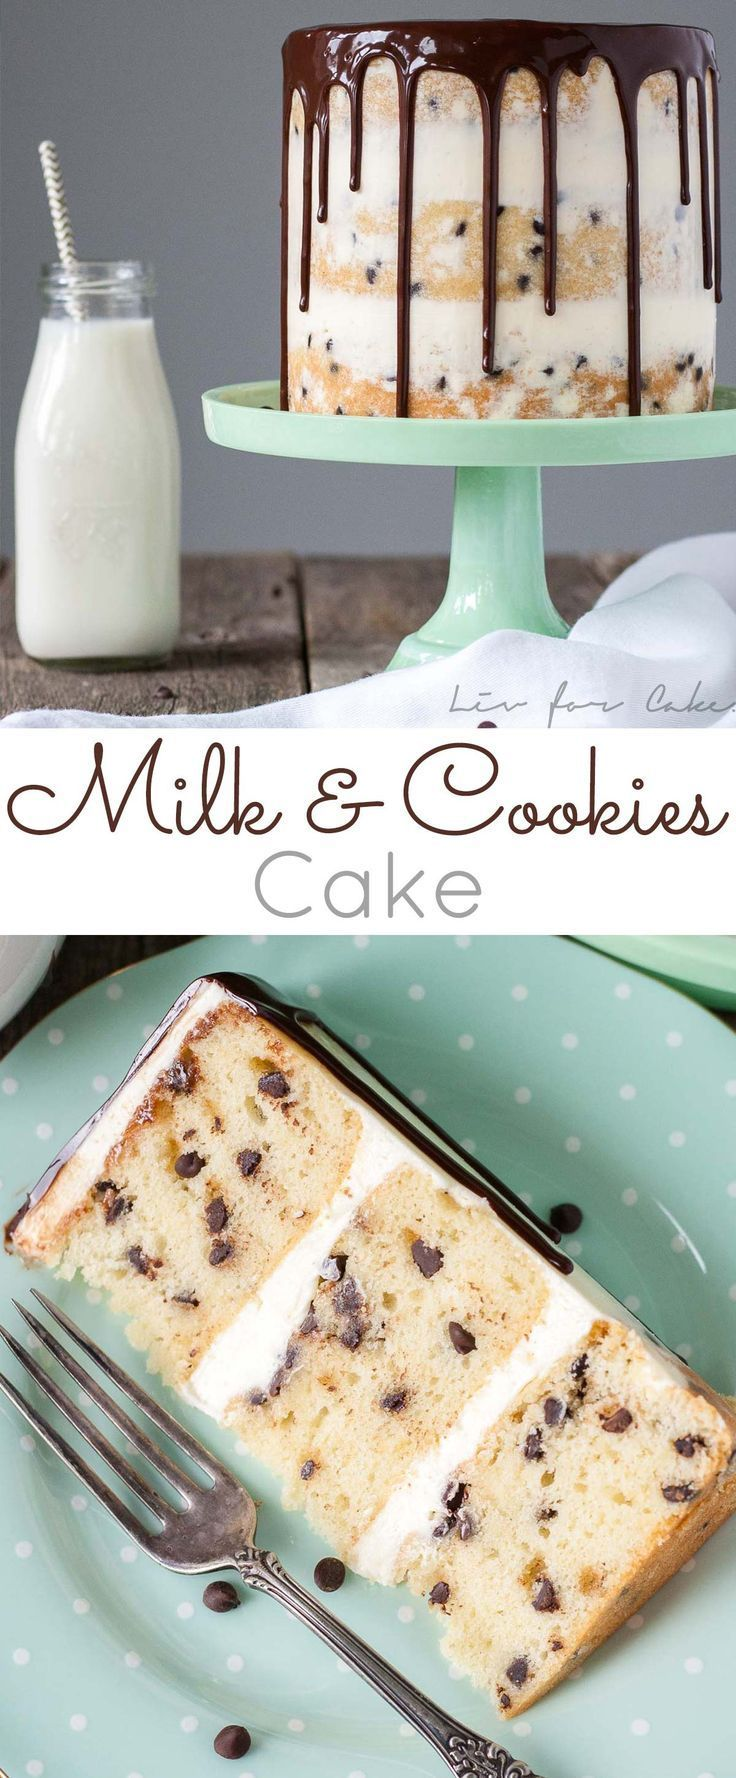 Milk & Cookies Cake! A childhood favorite gets an extreme makeover into this decadent Milk & Cookies Cake! | http://livforcake.com